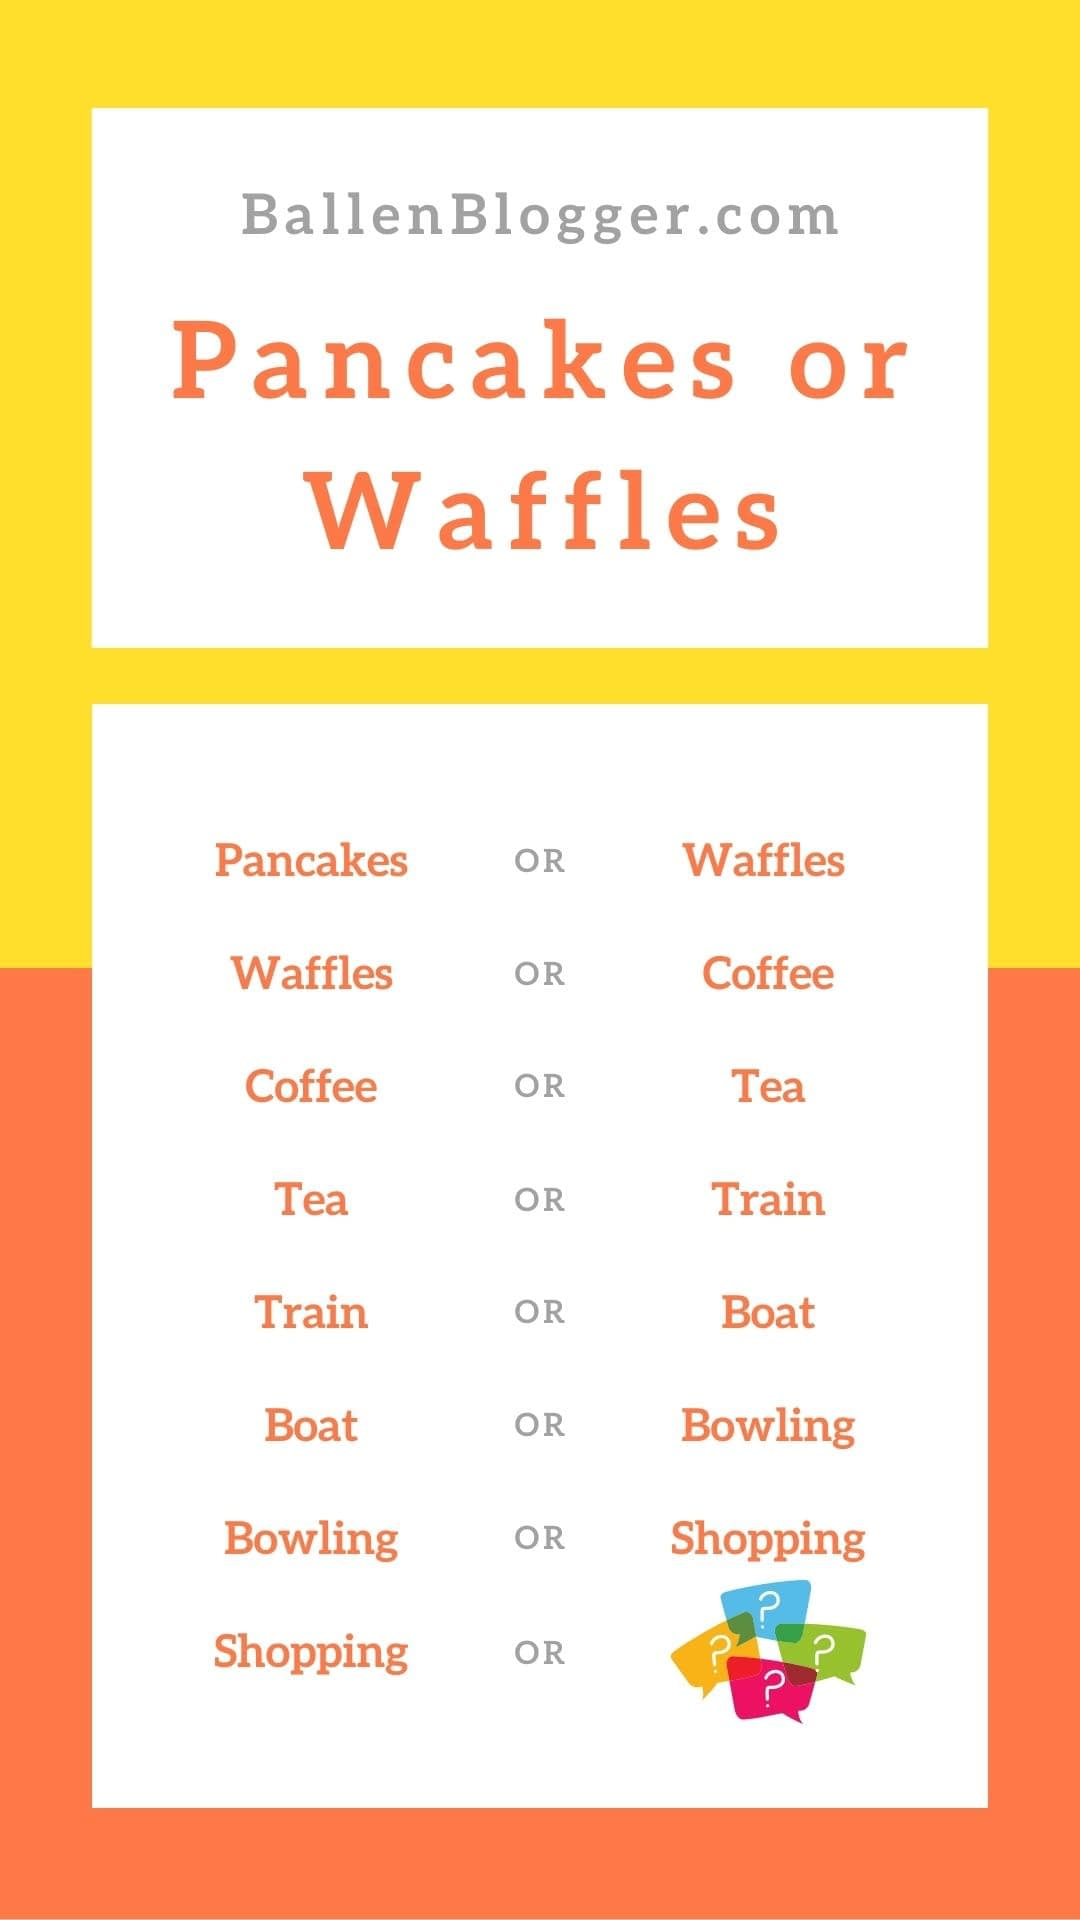 """Always great to get a friendly debate going; pancakes or Waffles game starts with a simple question of """"pancakes or waffles"""". The team discusses, debates, and then votes – with the winning choice moving on to the next bracket."""